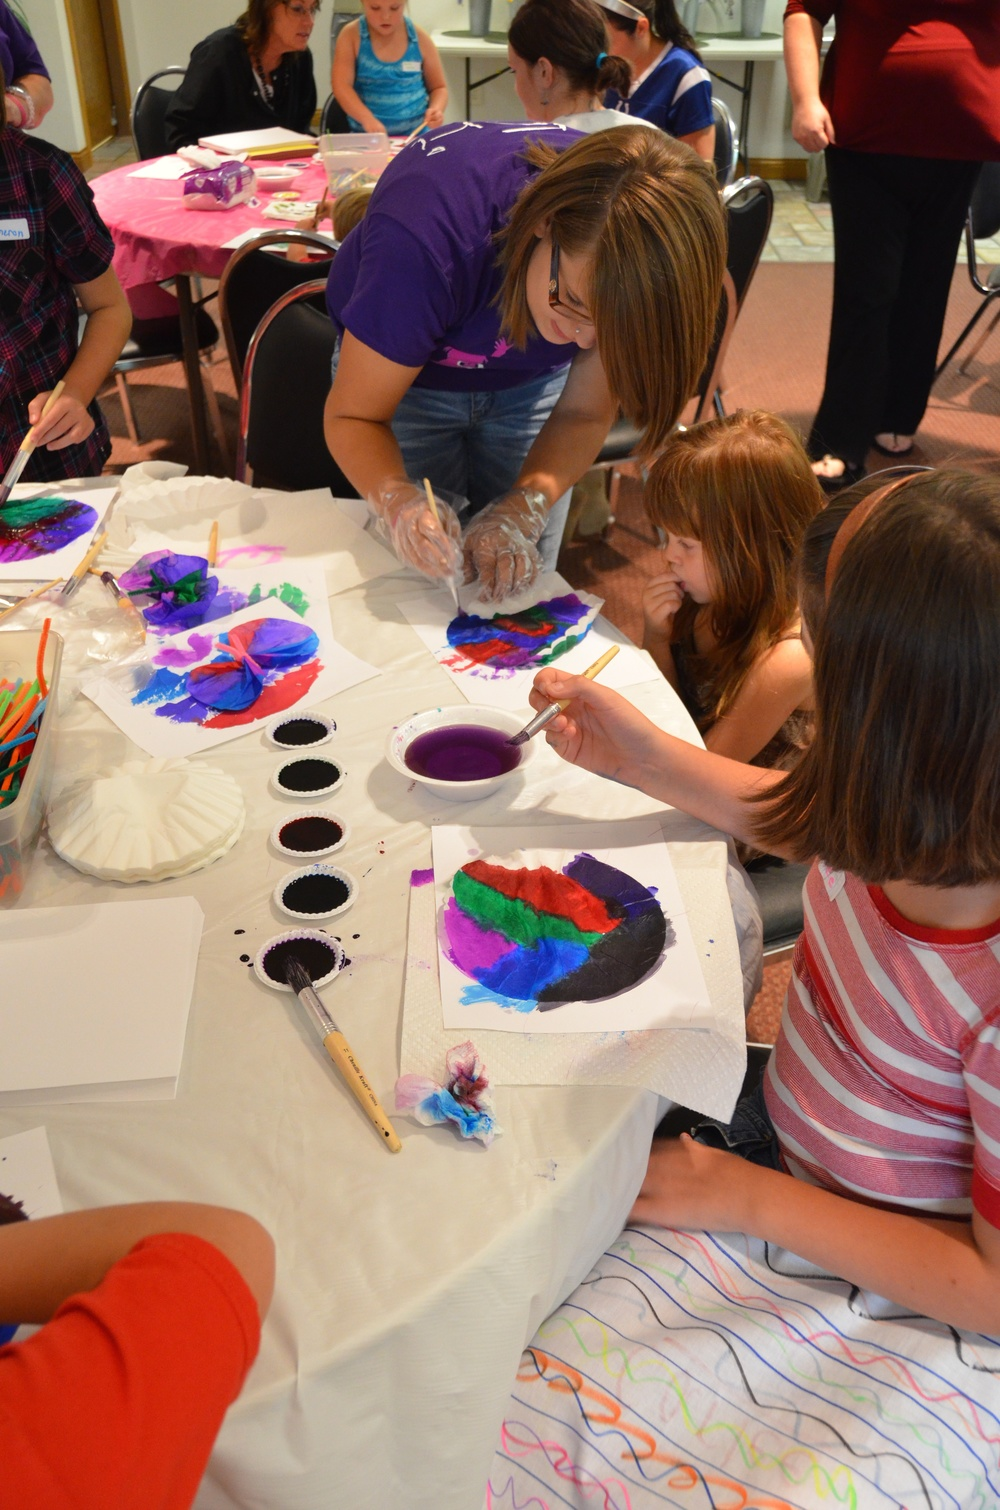 KIds ARt Church 9 12 2011   95247.jpg